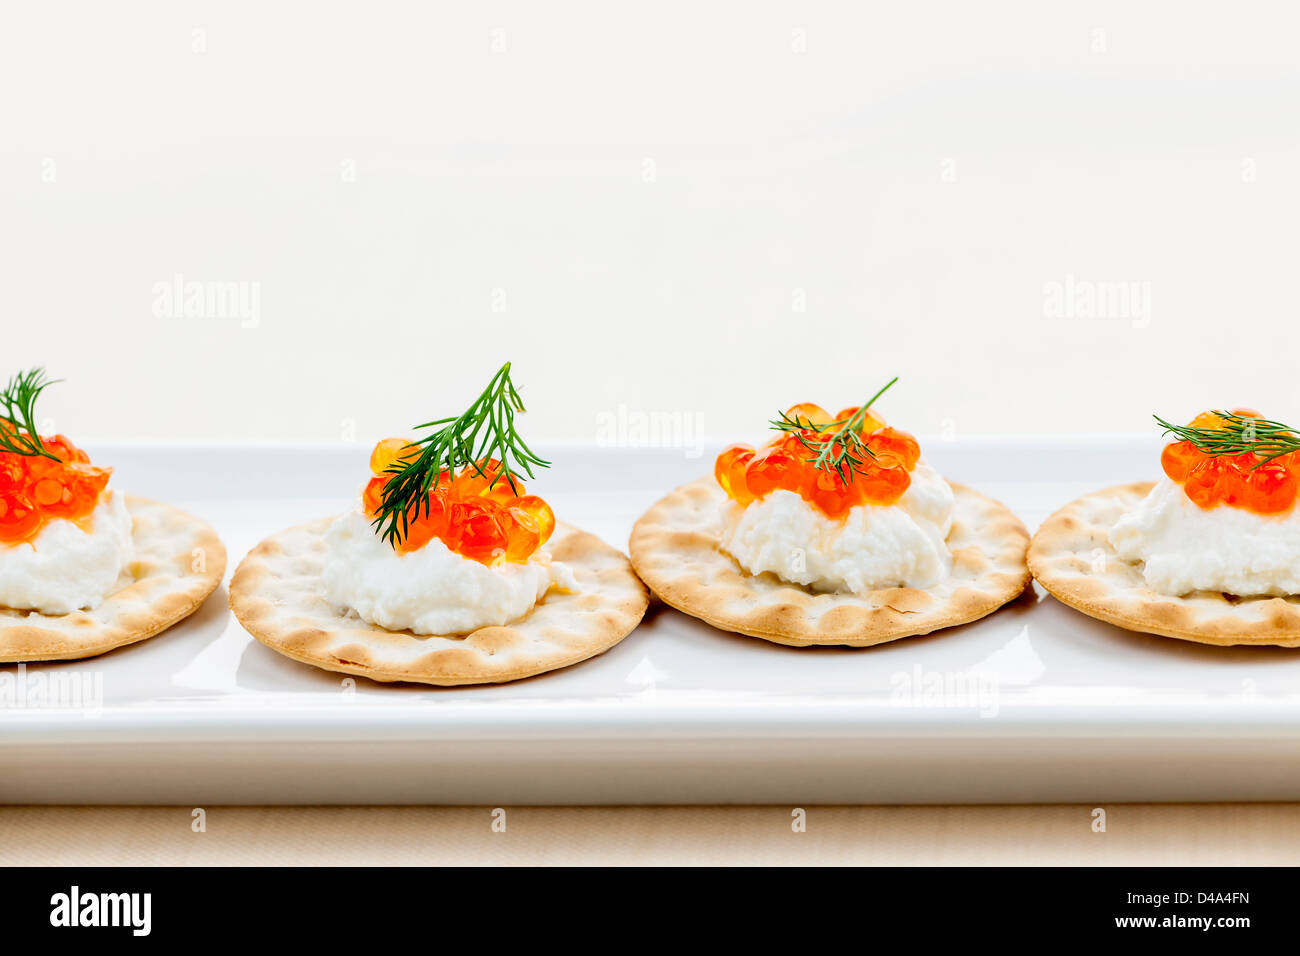 Caviar appetizer with goat cheese and crackers on white plate - Stock Image